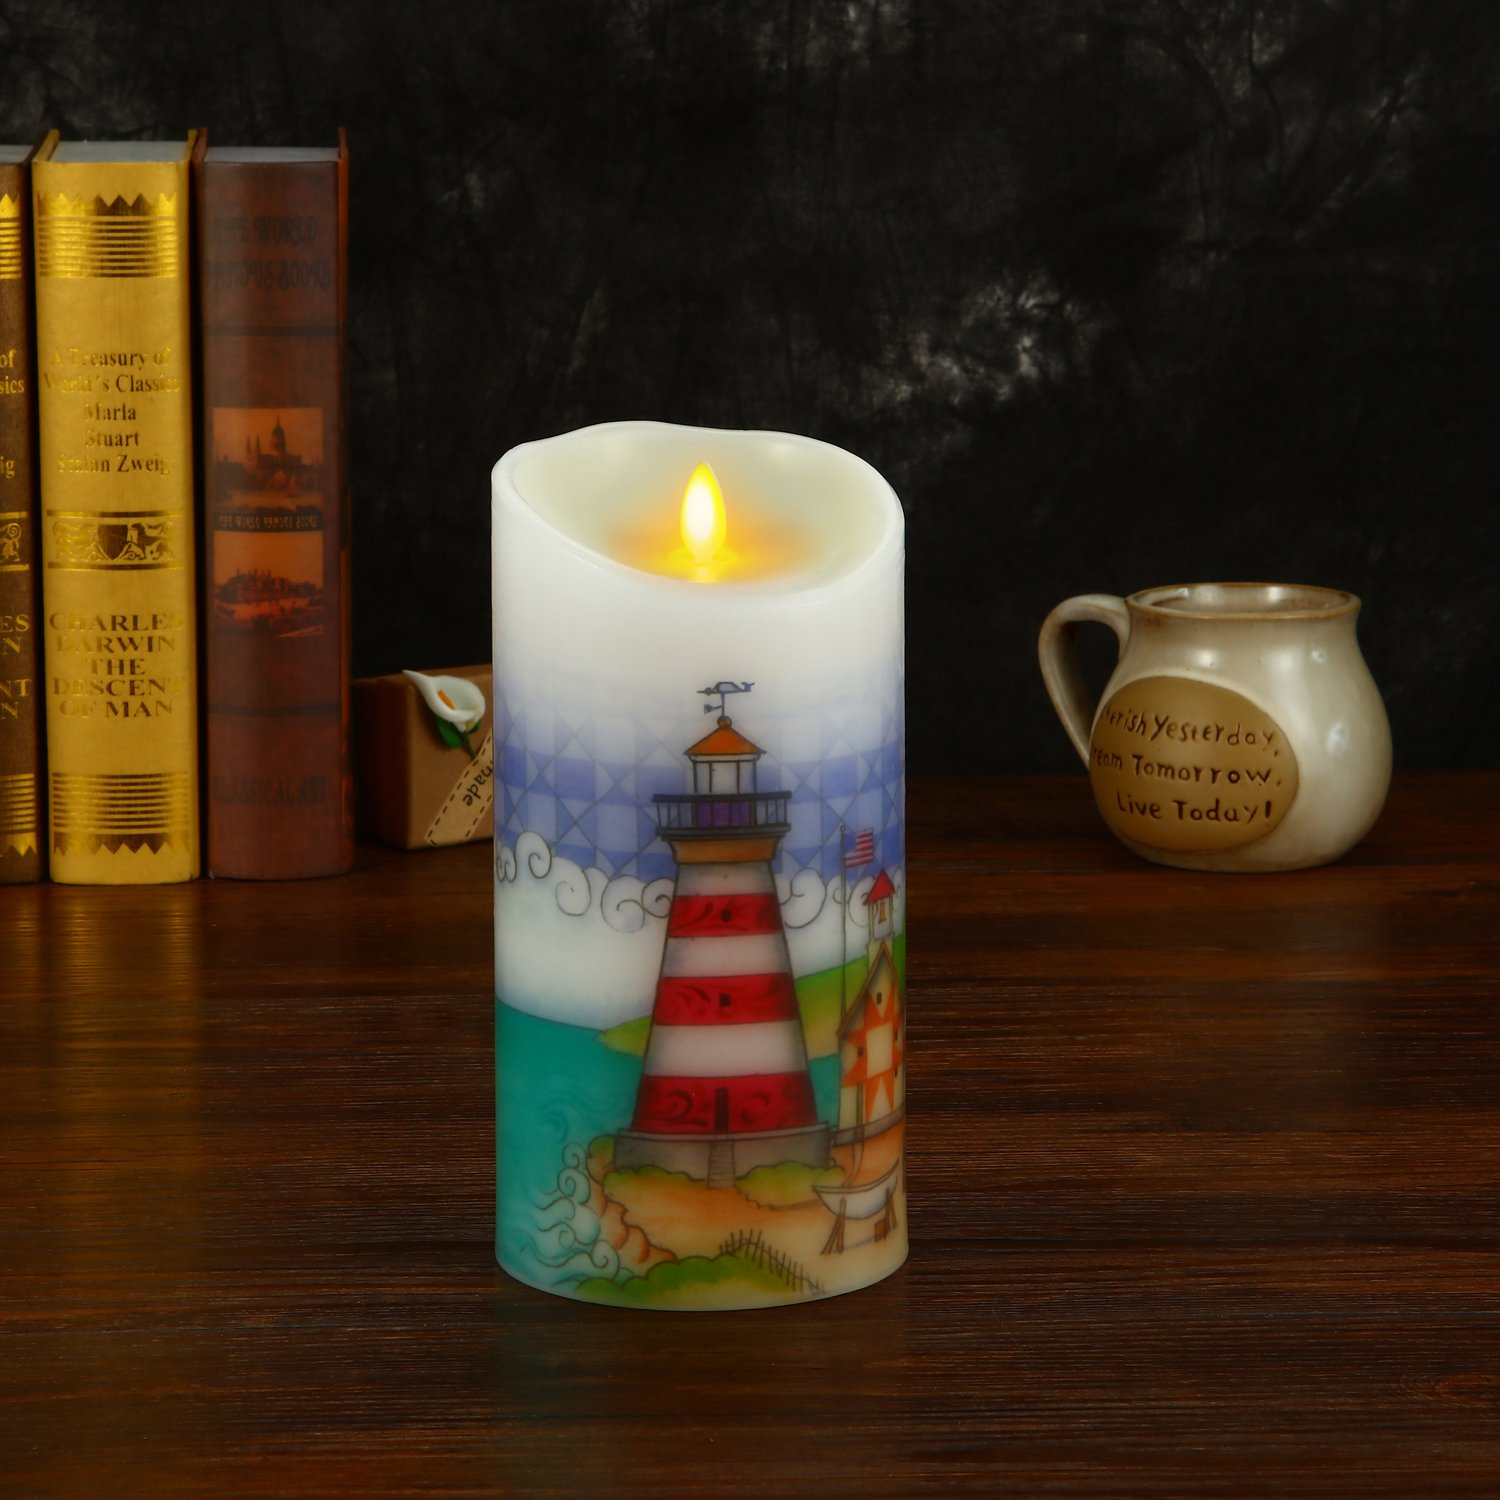 Ksperway Flameless Wax Candles, Moving Wick LED Pillar Candle with Blow ON/Off Control,Timer and Remote 3.5 by 7 Inch Picture (Lighthouse) by Ksperway (Image #5)